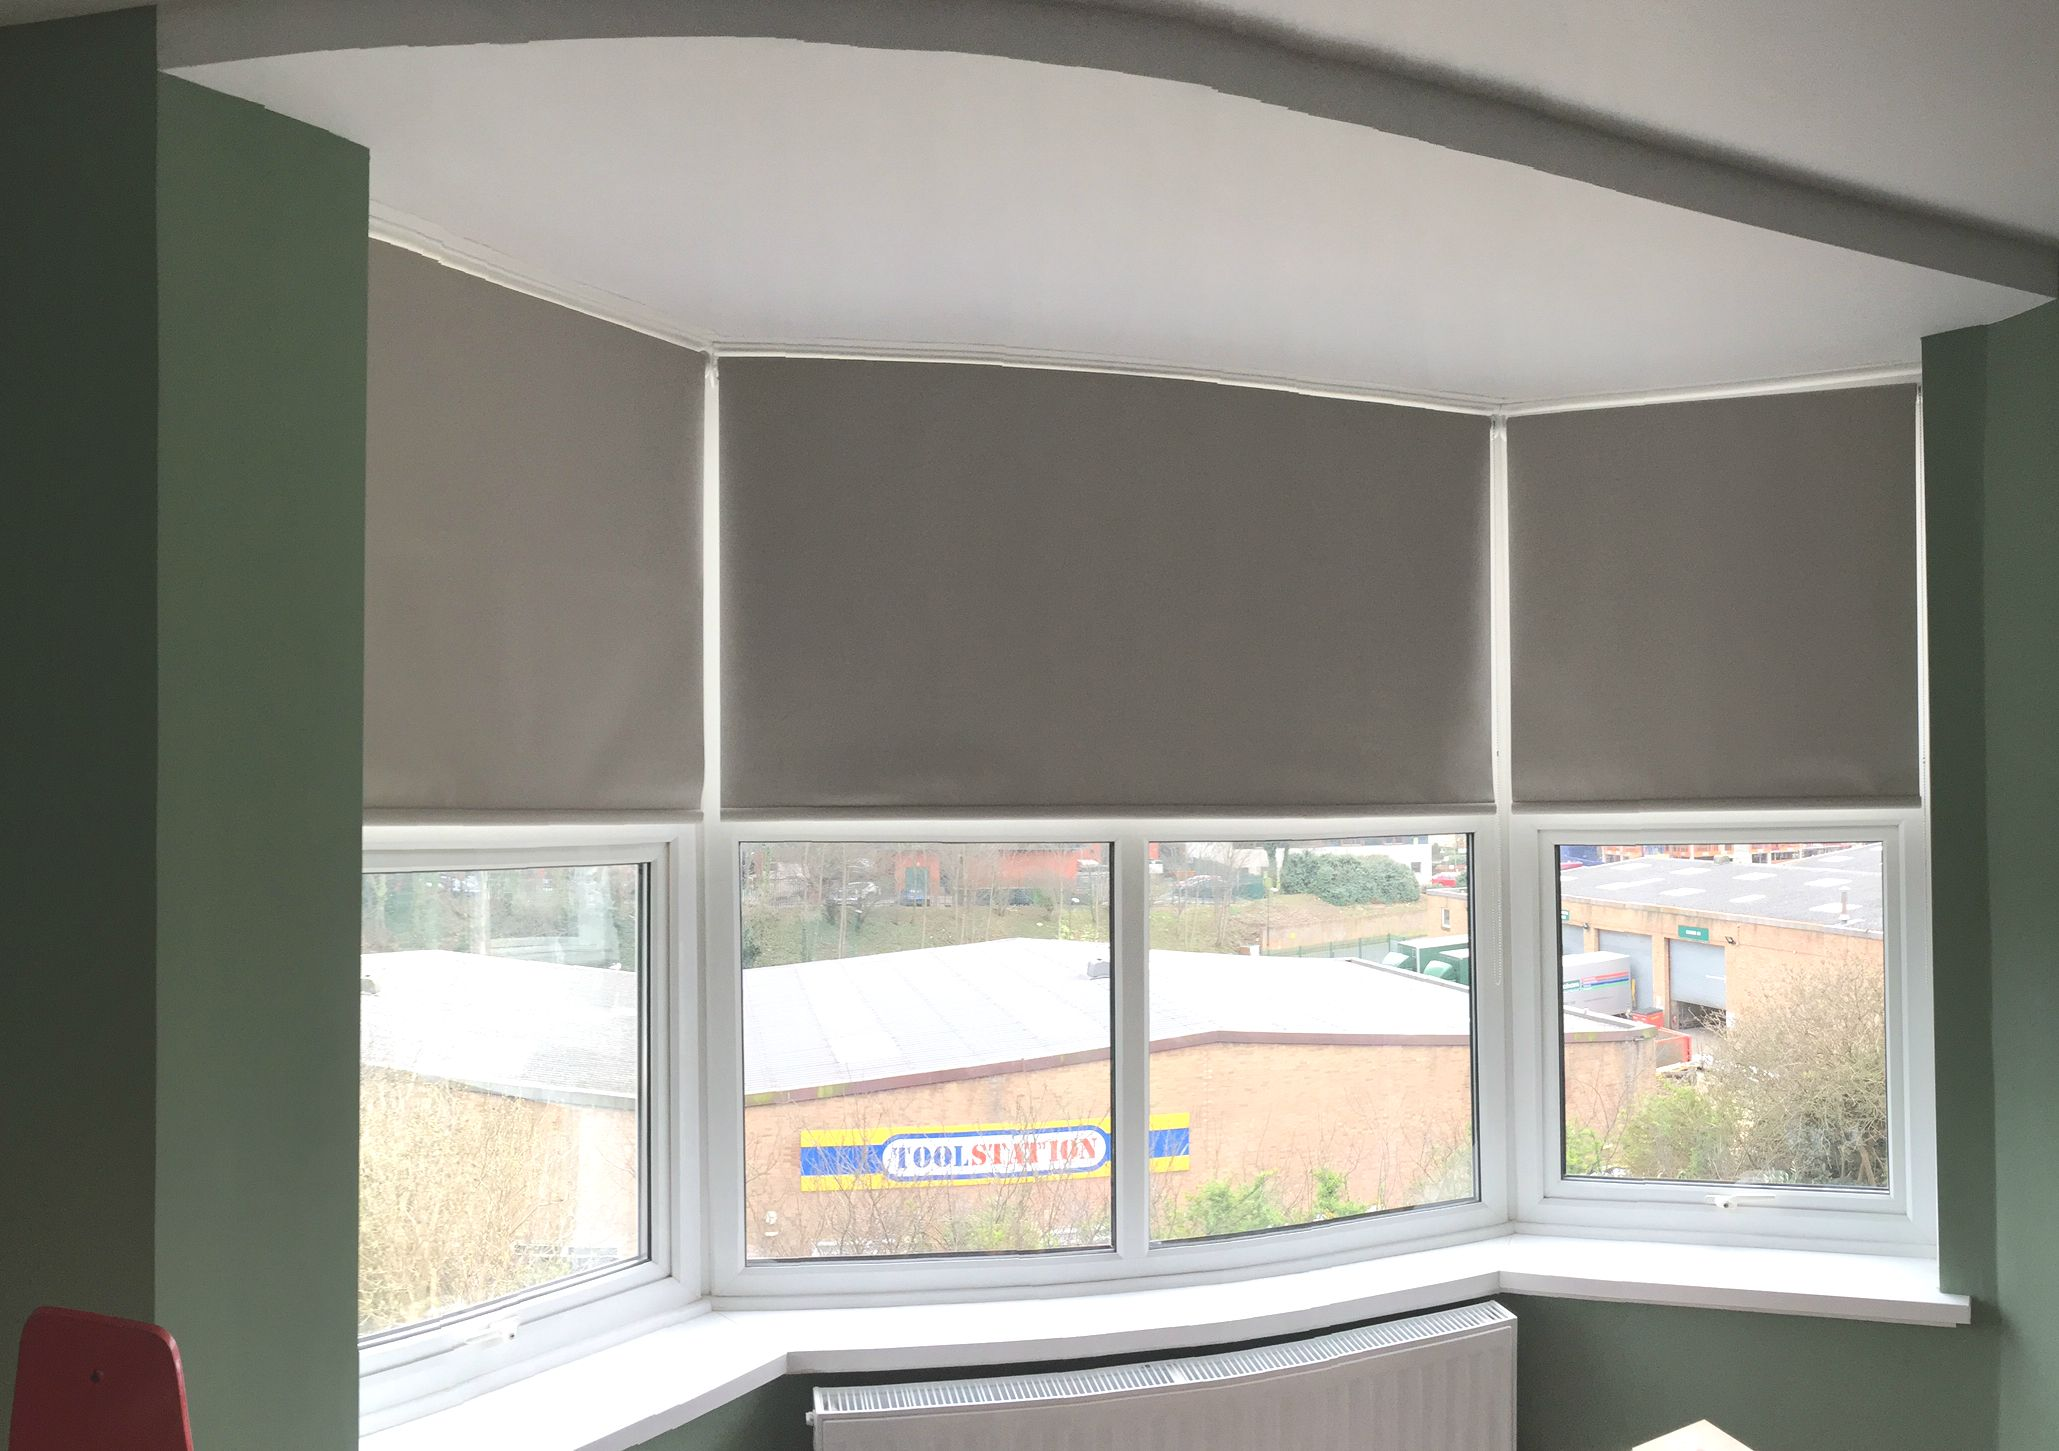 Blackout Roller Blinds For Bay Window Bedroom In Flint Grey Colour Made To Measure